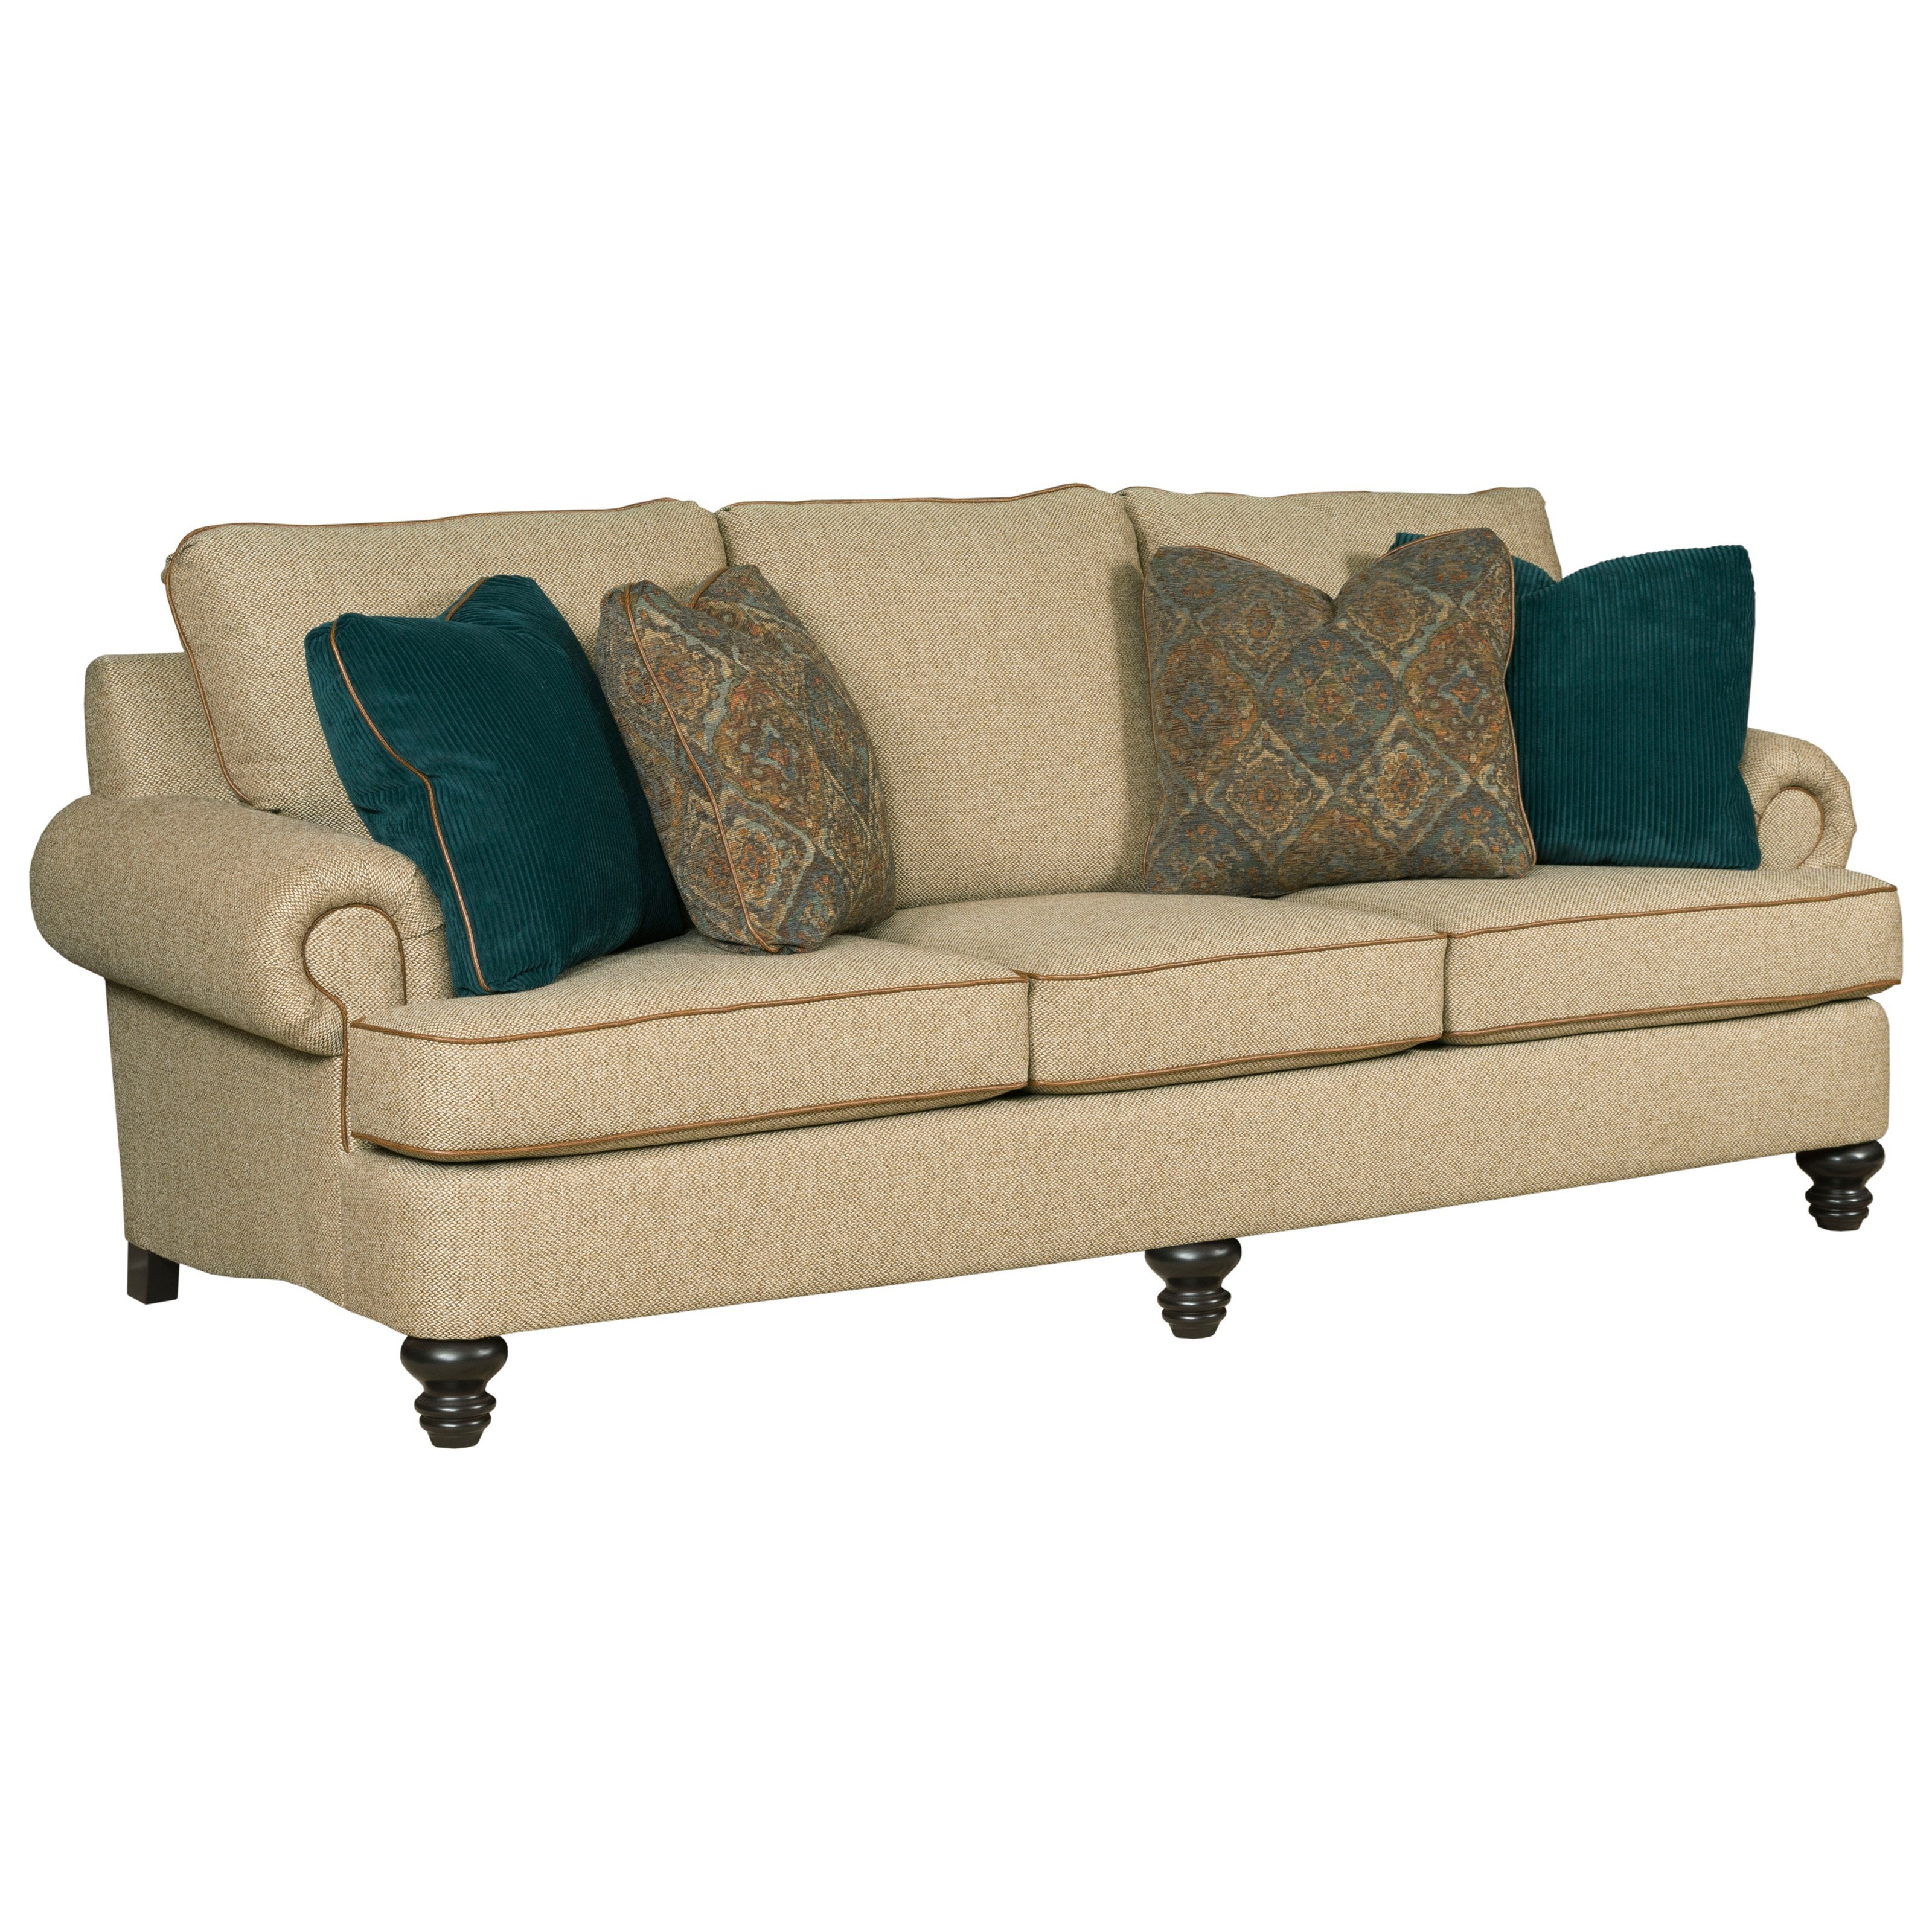 Kincaid furniture avery traditional 94 grand sofa with for Traditional sofas with legs